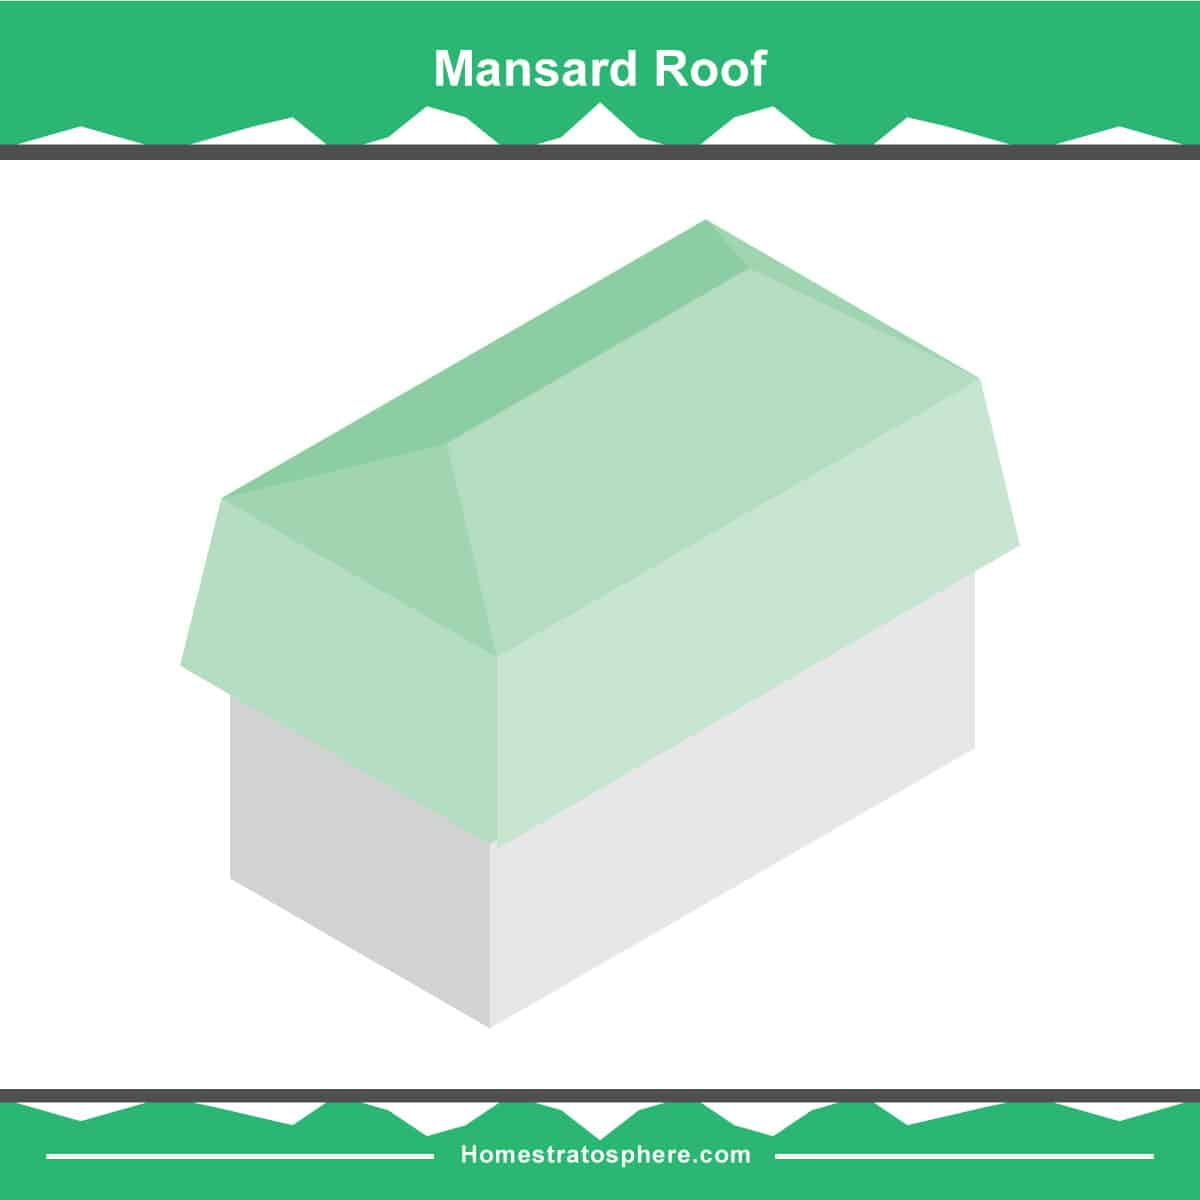 Mansard roof diagram